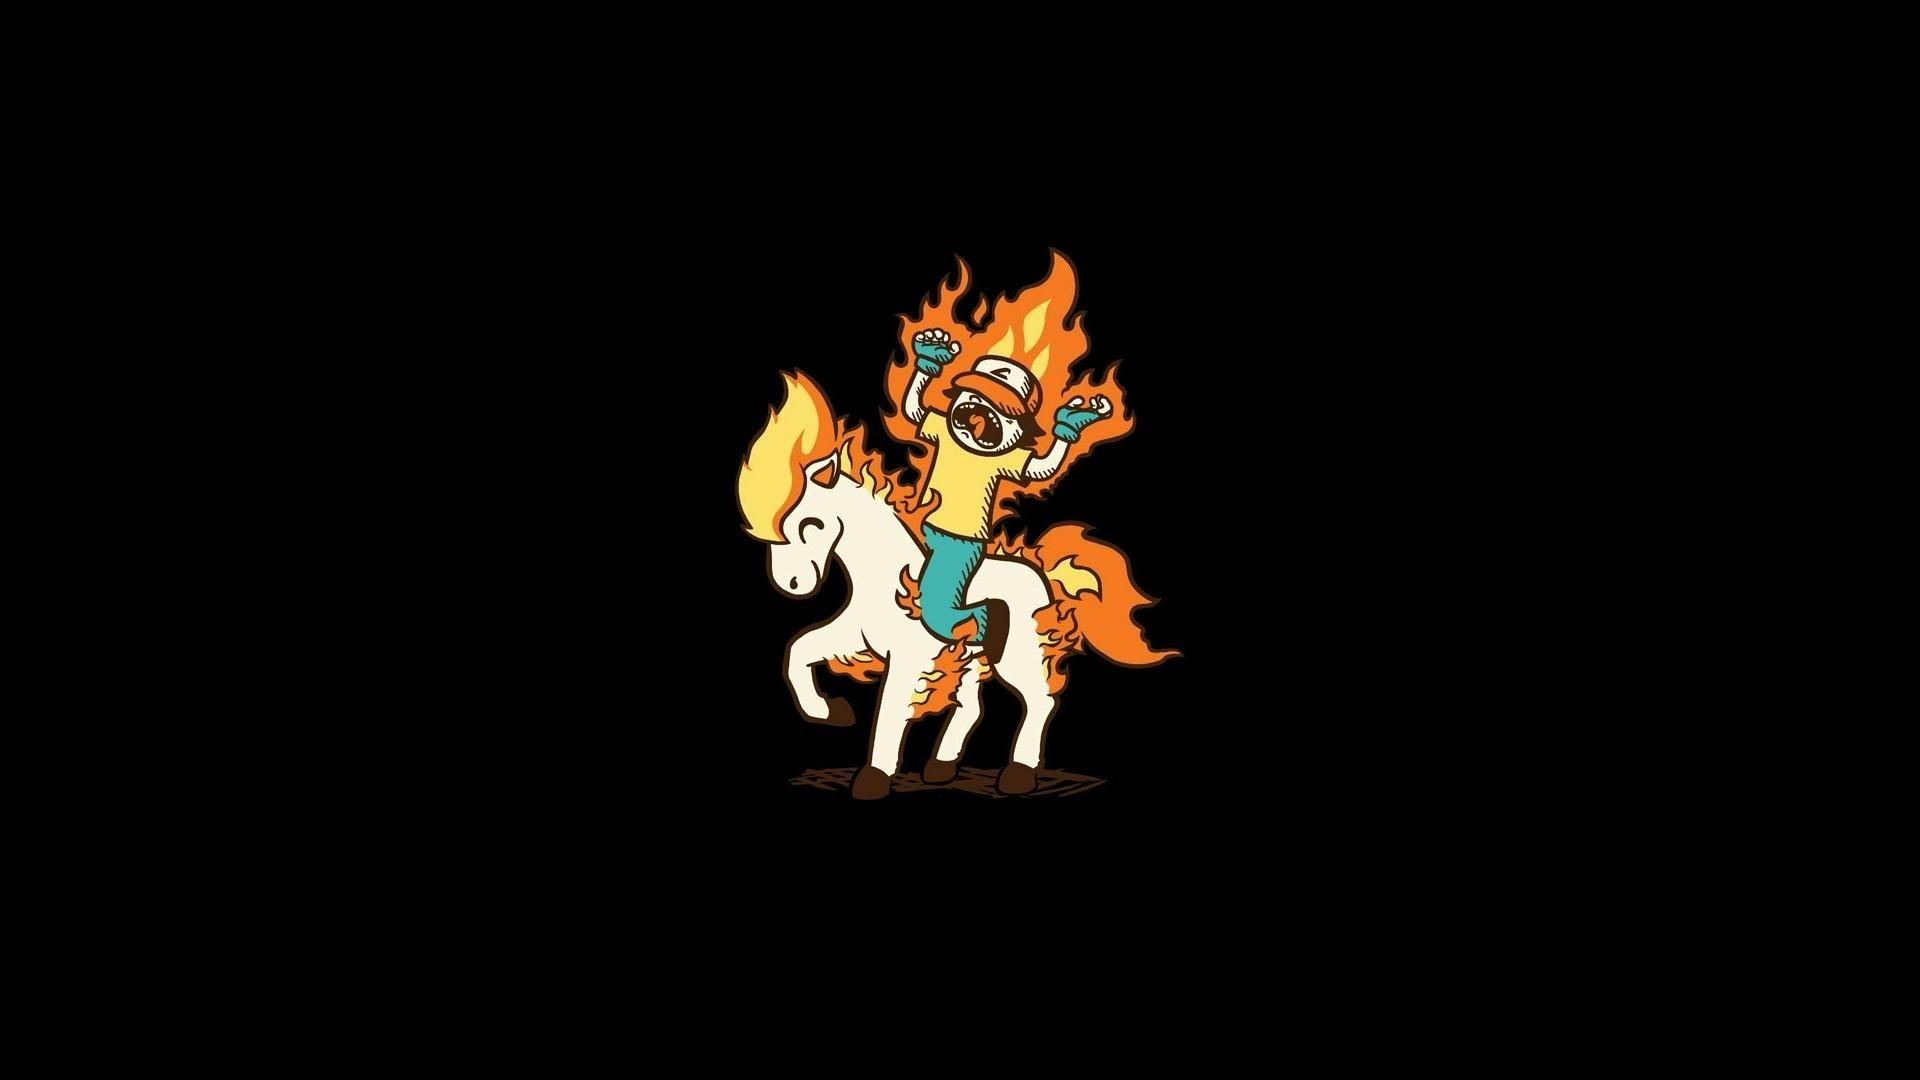 Pokemon ponyta black backgrounds minimalistic simple wallpapers